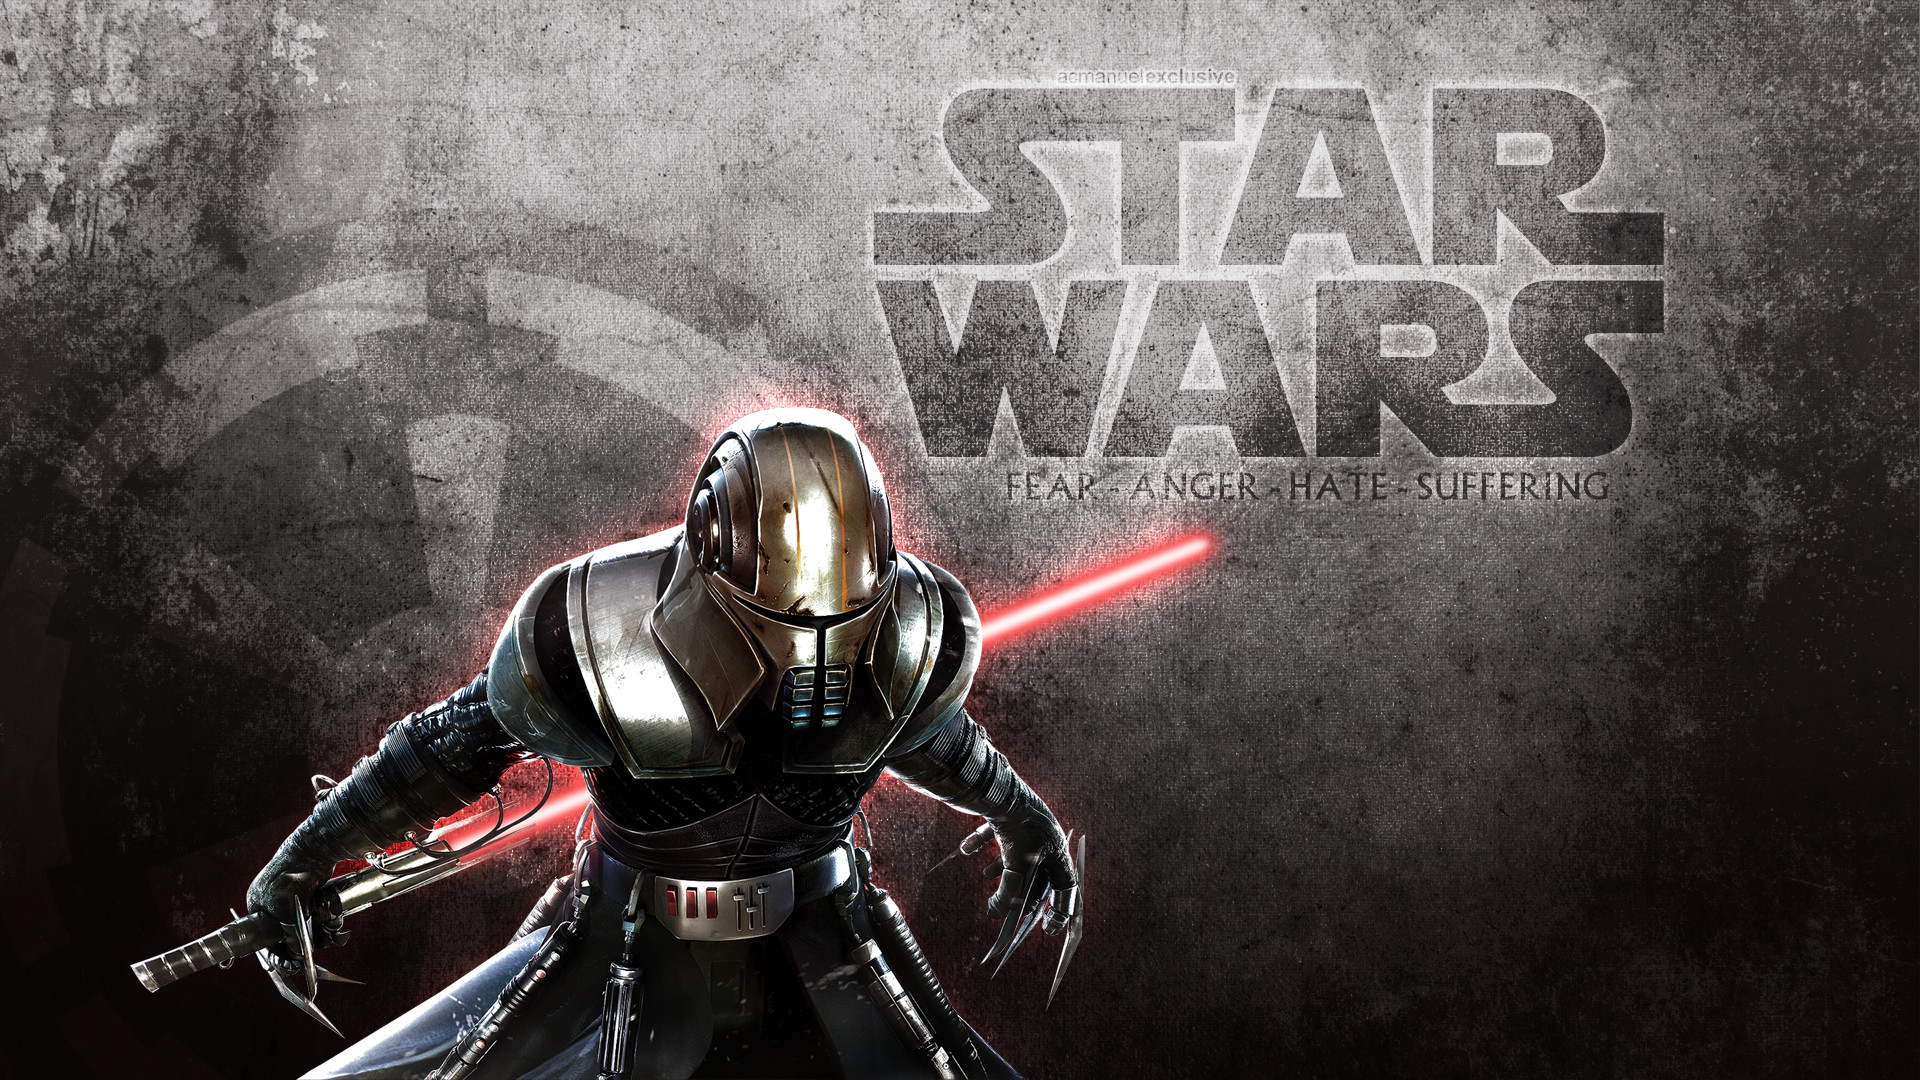 Star Wars Wallpaper Set 10   Awesome Wallpapers